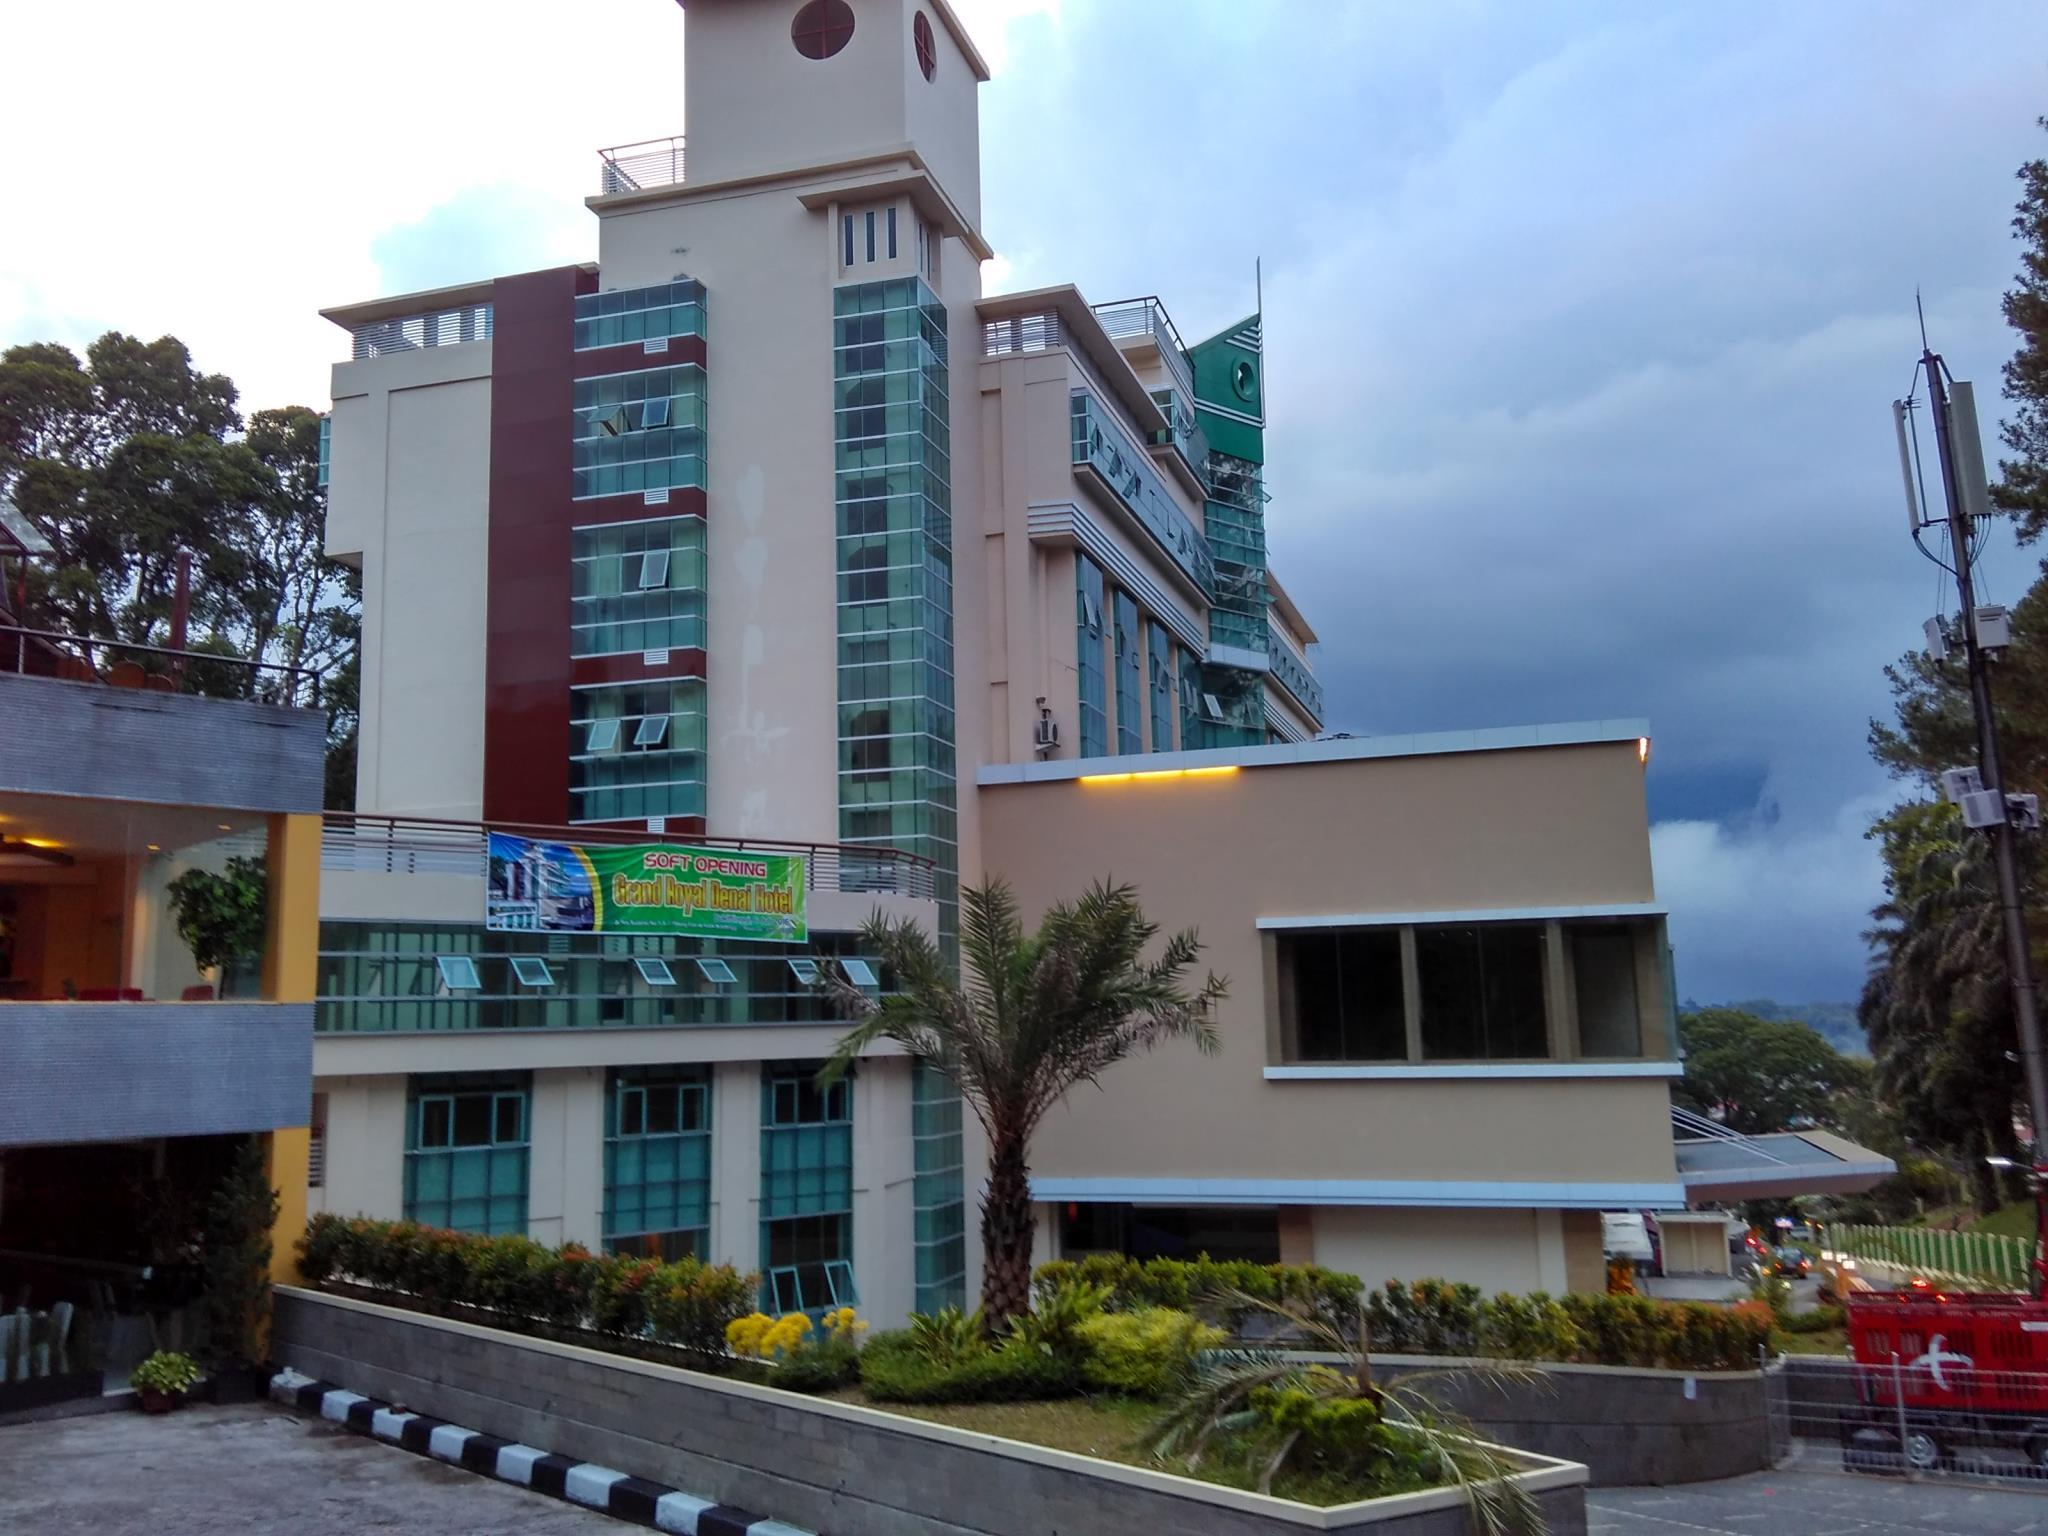 Grand Royal Denai Hotel, Bukittinggi